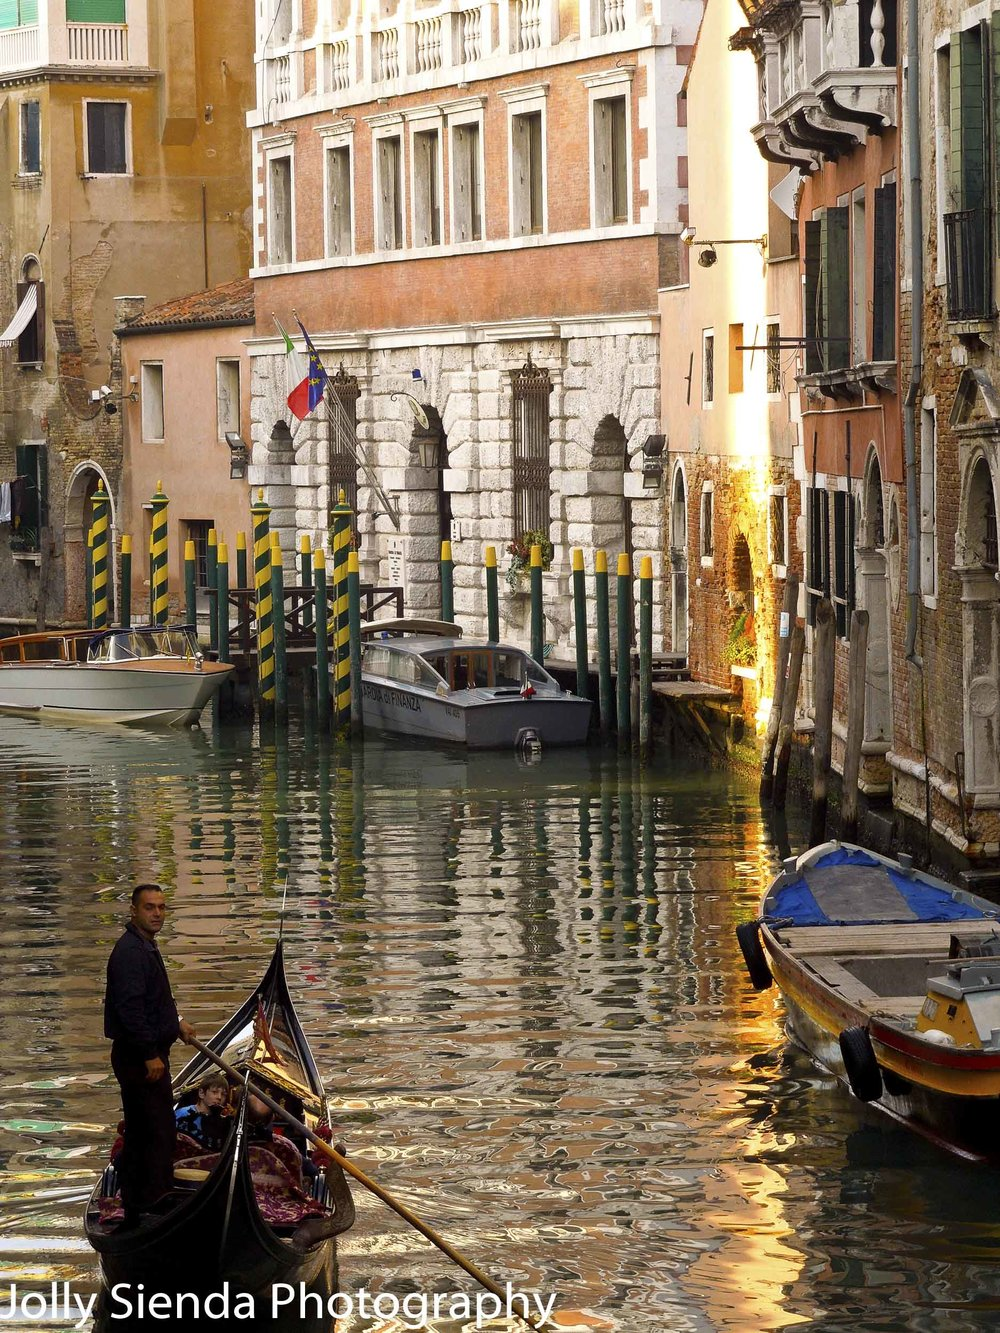 Afternoon light on the gondolier